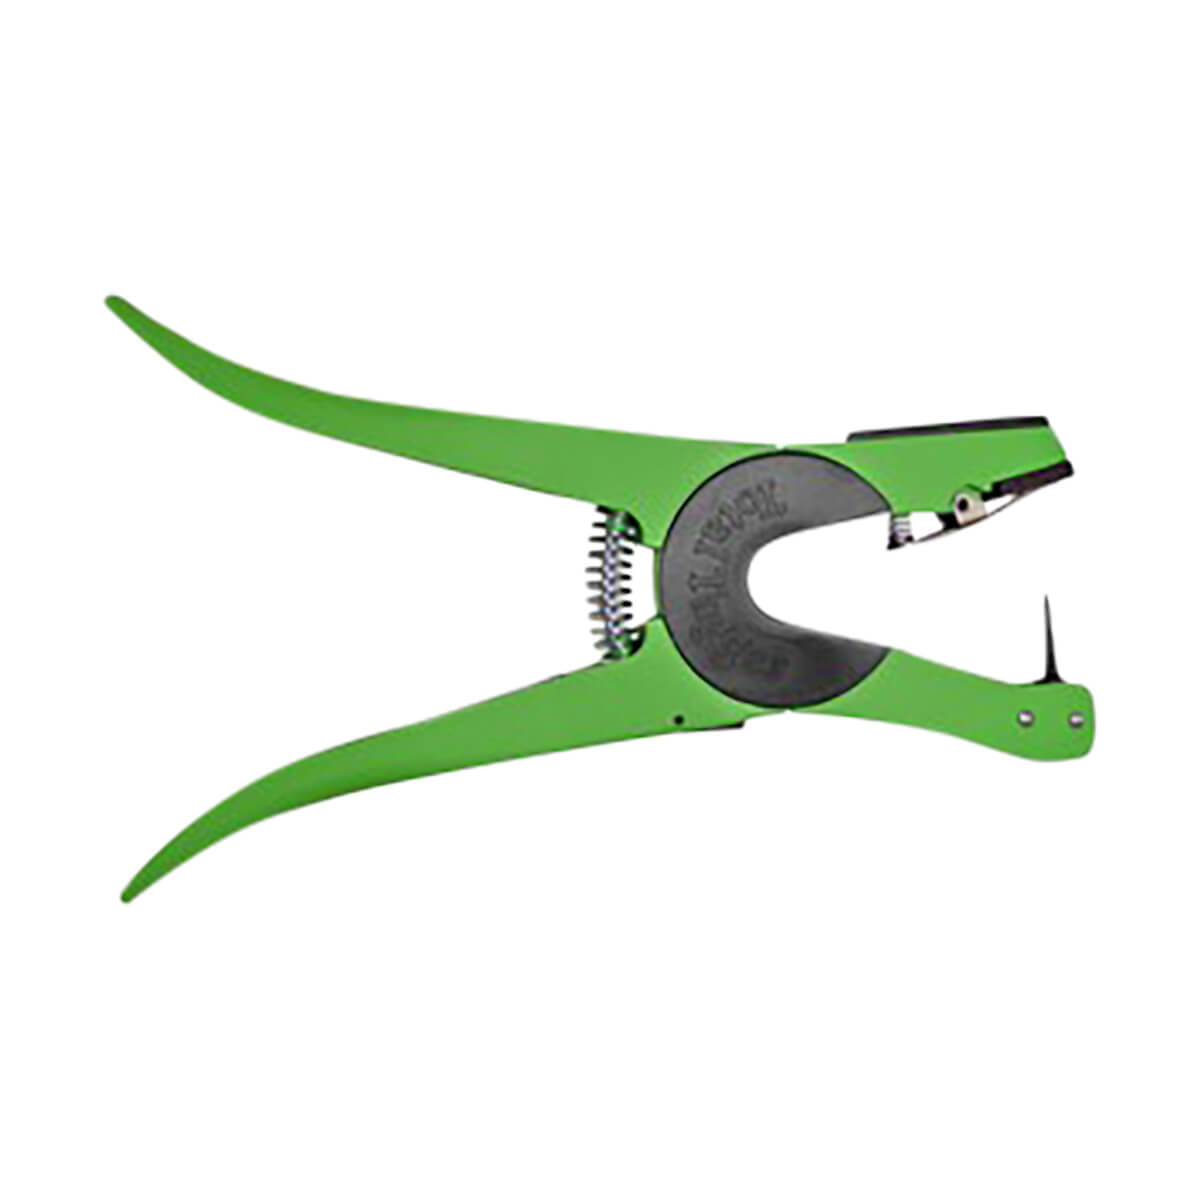 Replacement Pin for Total Tagger Plus Applicator - Green